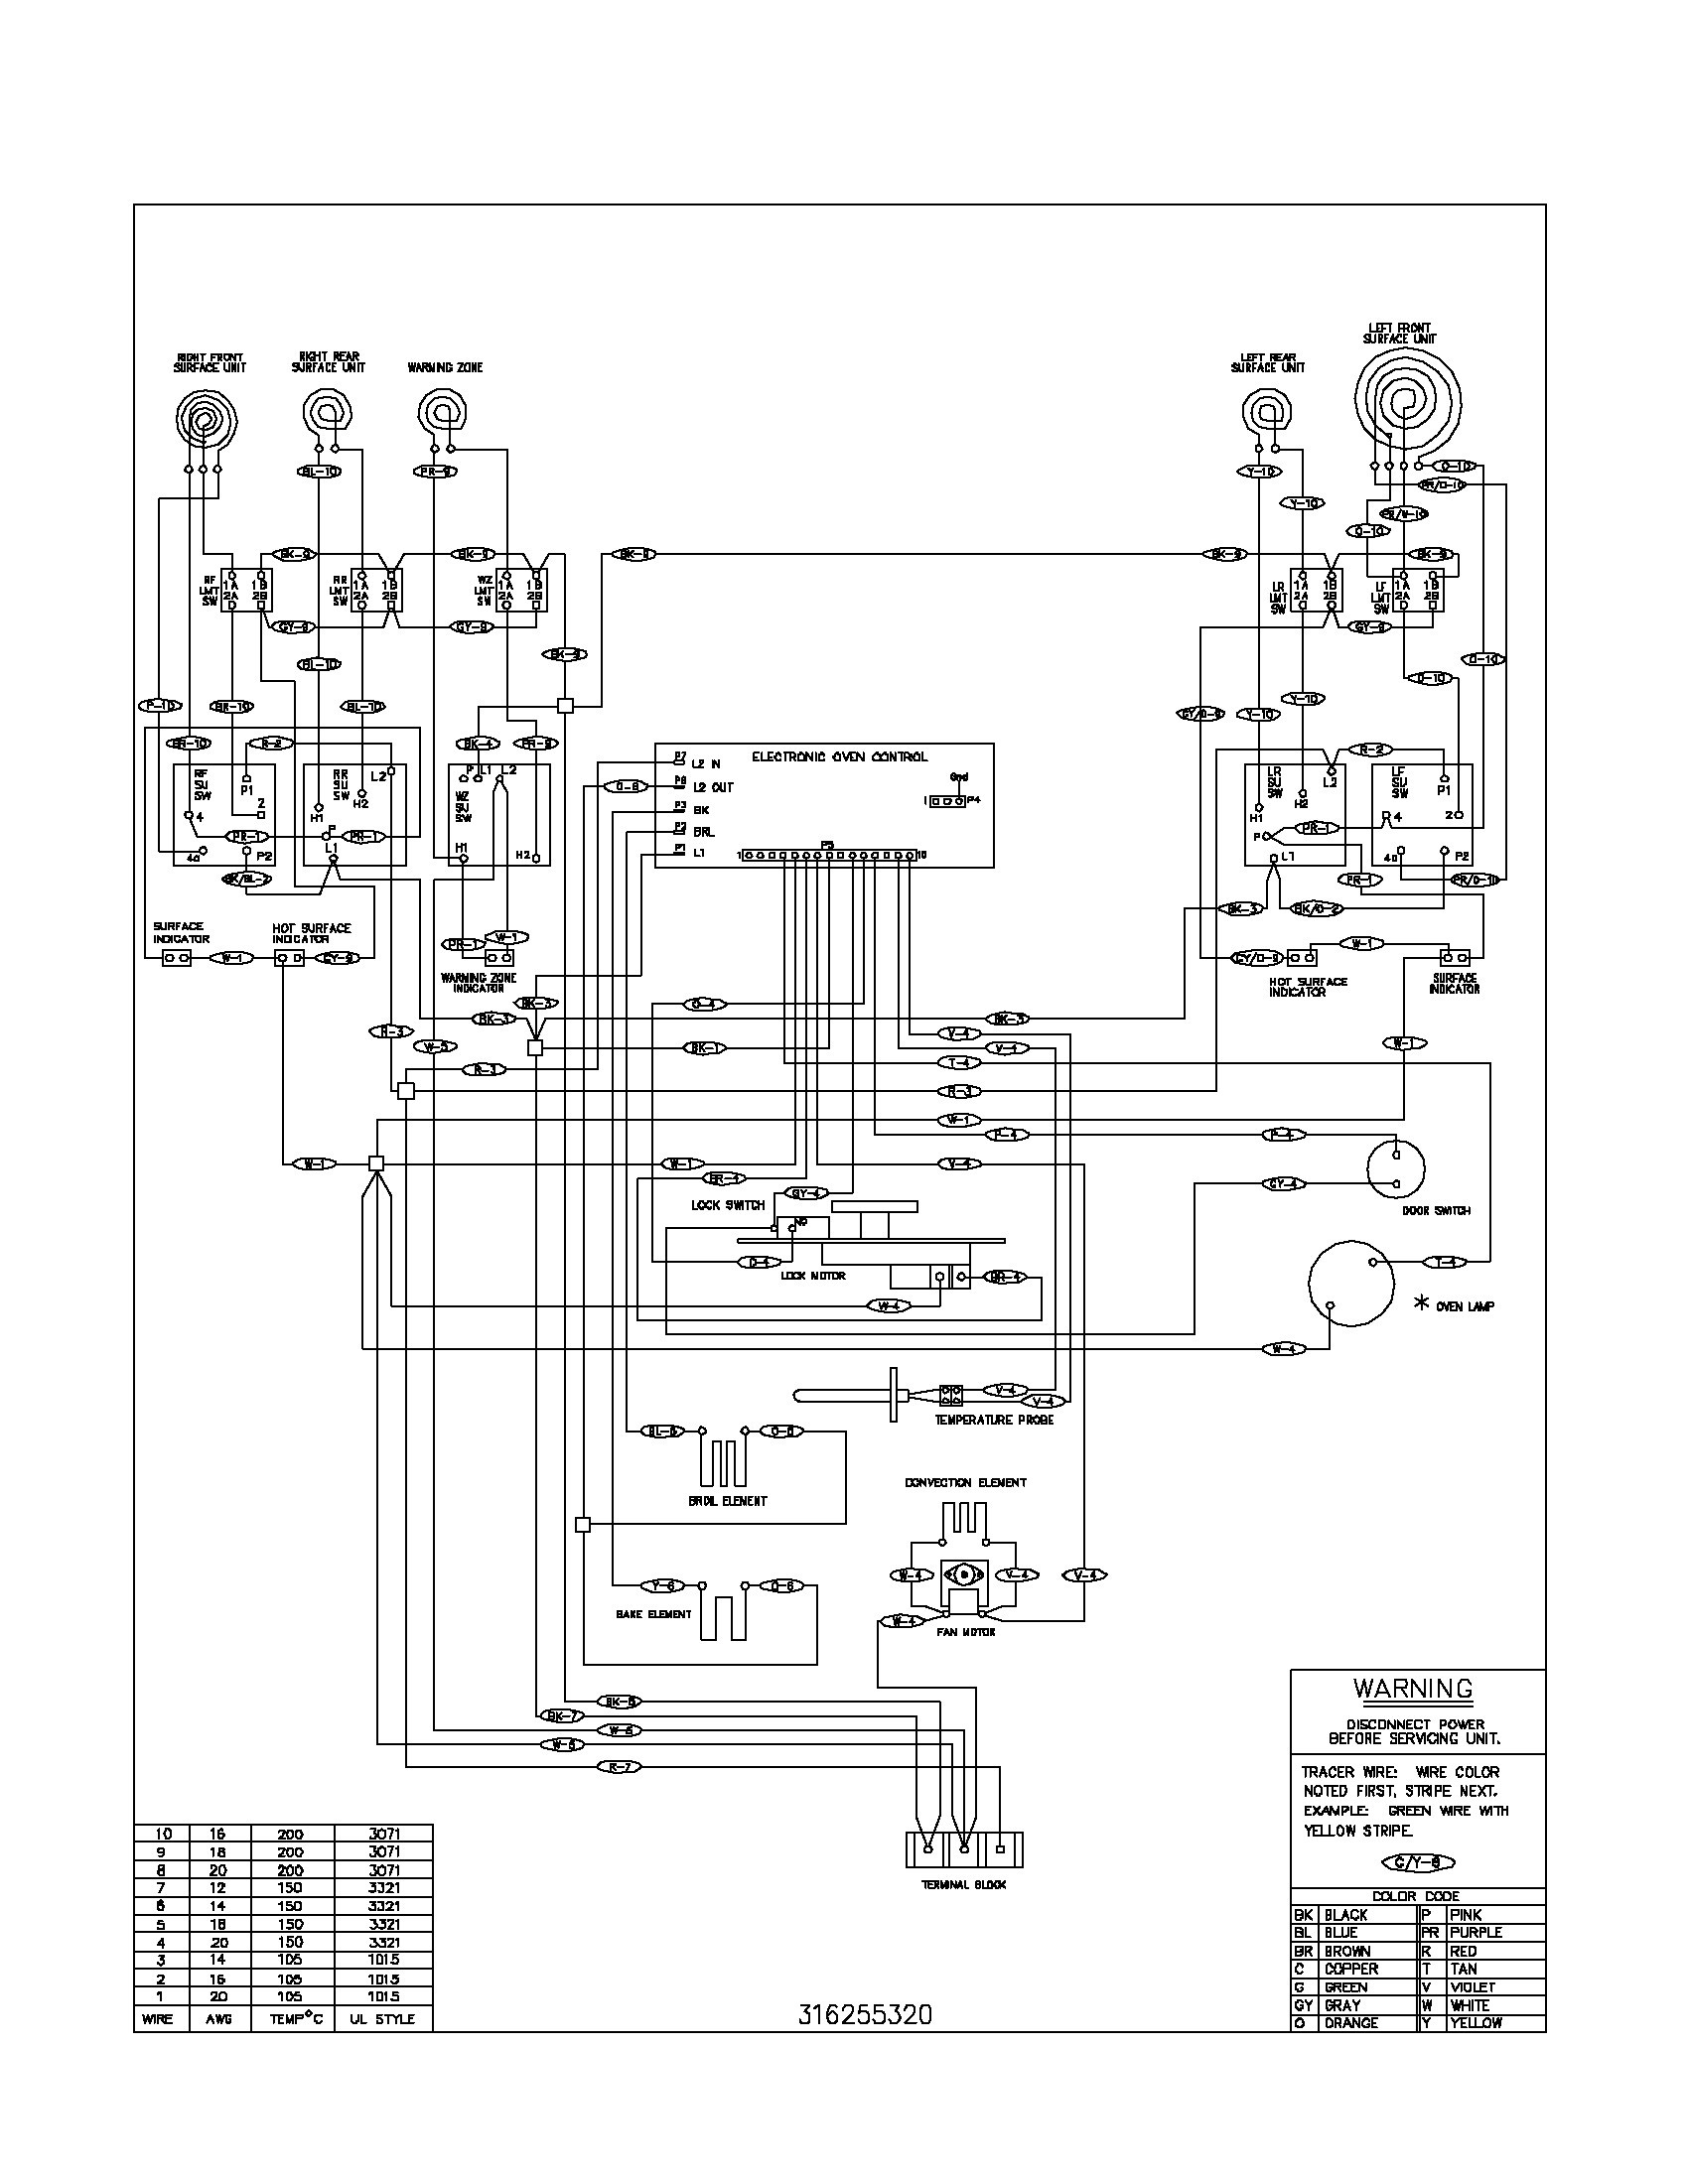 wolf oven wiring diagram Wiring Diagram